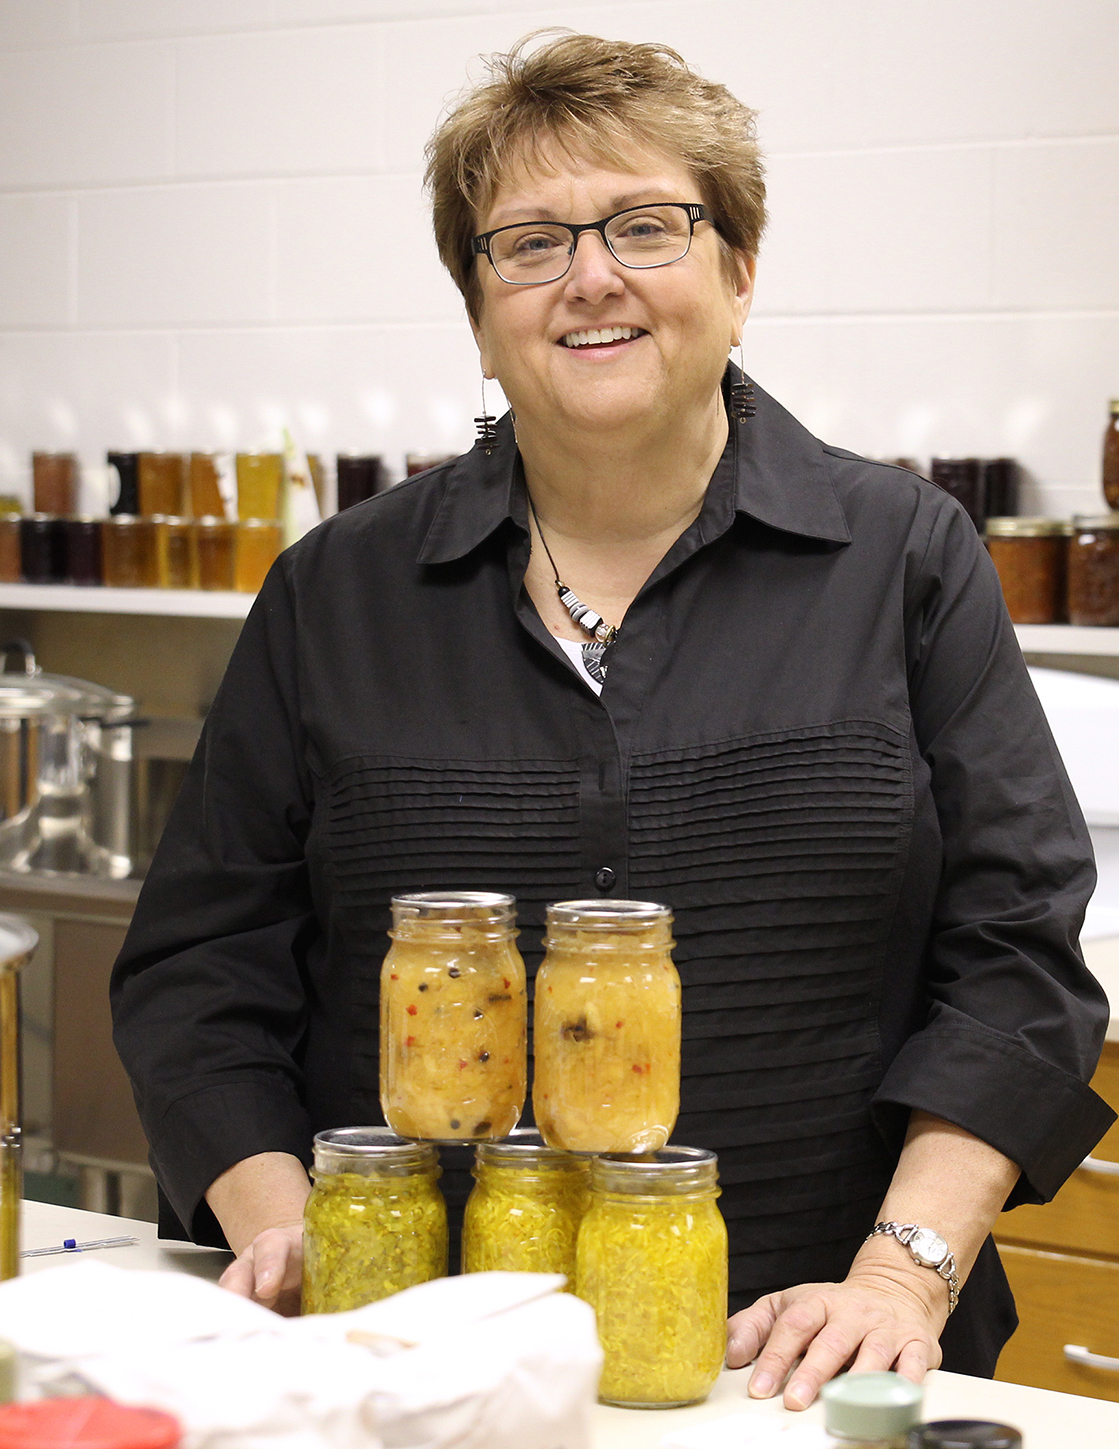 Elizabeth Andress, director of the National Center for Home Food Preservation housed in the University of Georgia College of Family and Consumer Sciences, trains UGA Cooperative Extension agents and others on the proper, safe way to can fruits, vegetables and other foods.